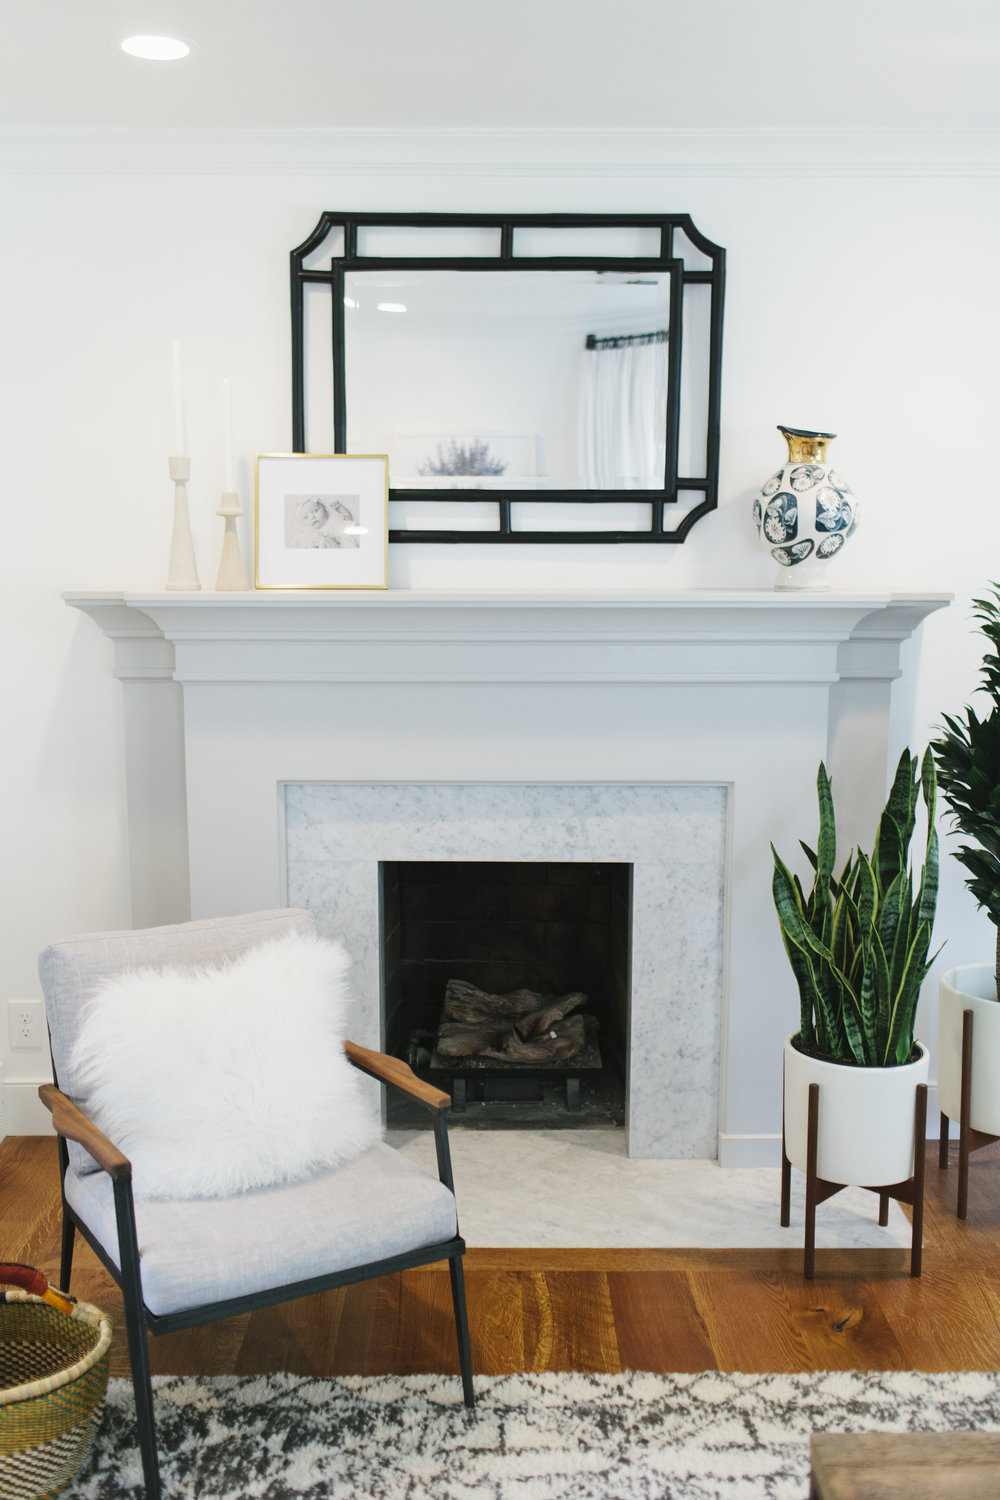 Studio McGee - Lynwood Remodel Fireplace